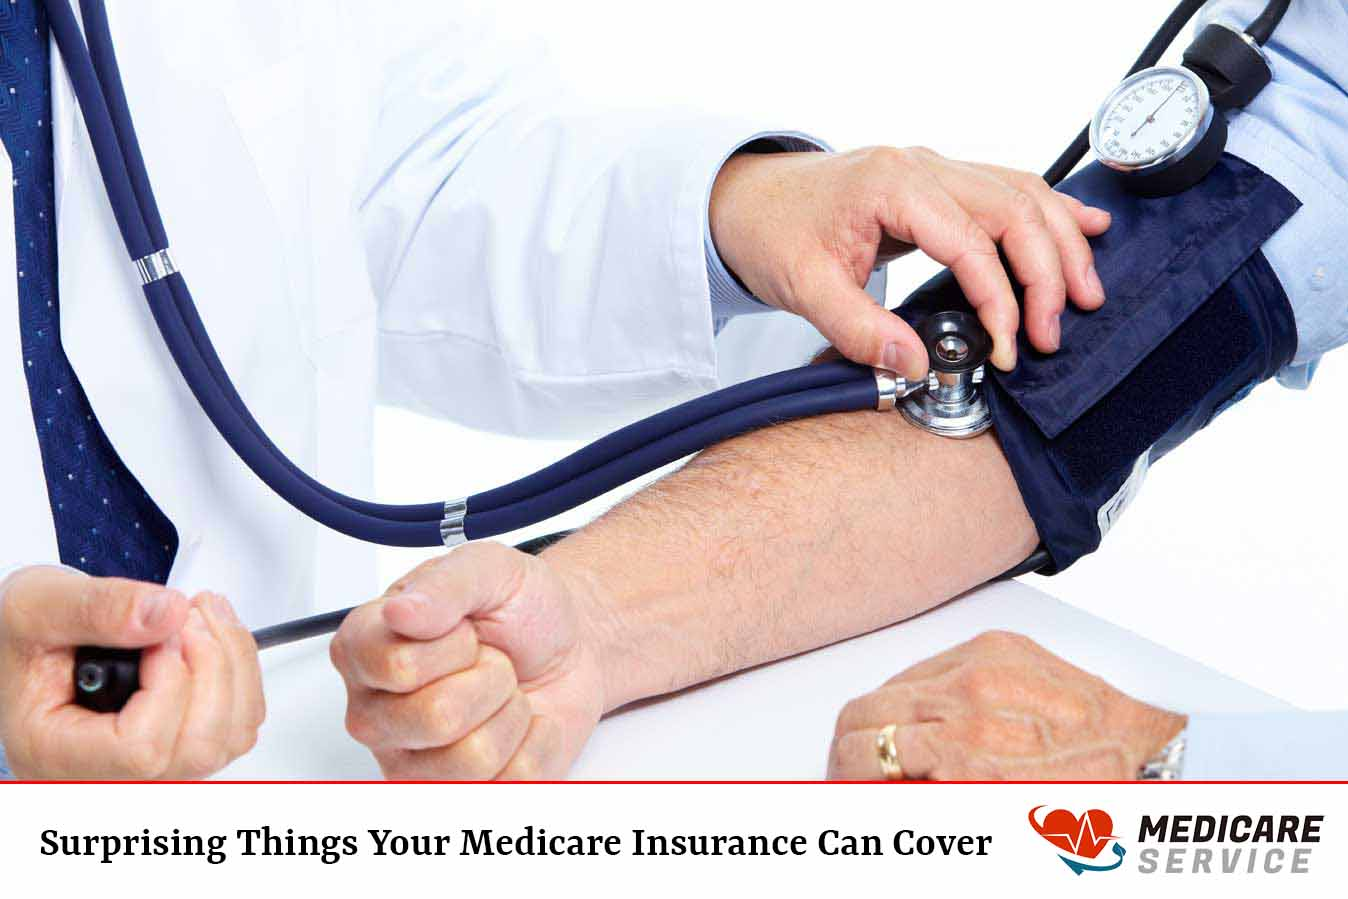 Surprising Things Your Medicare Insurance Can Cover